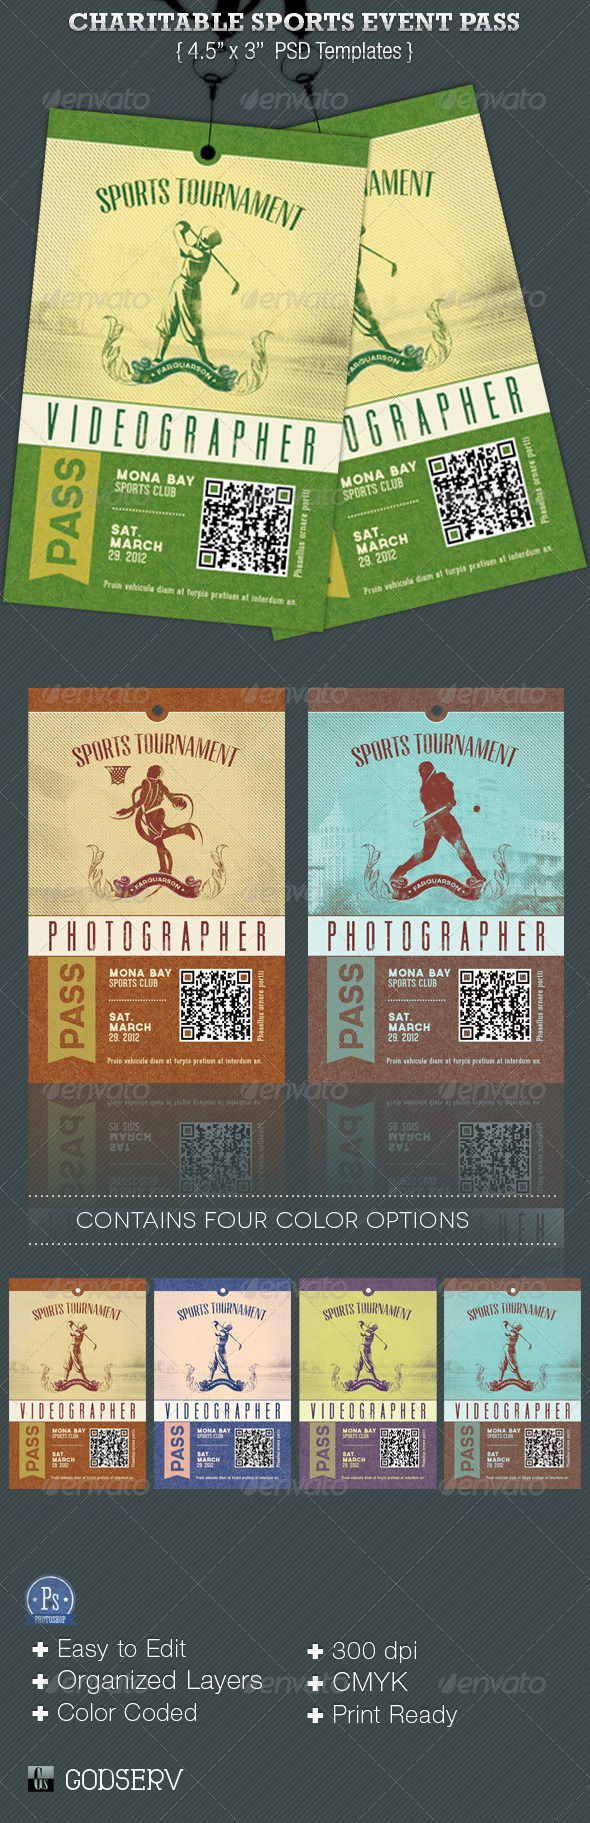 Charitable Sports Event Pass Template - Miscellaneous Print Templates